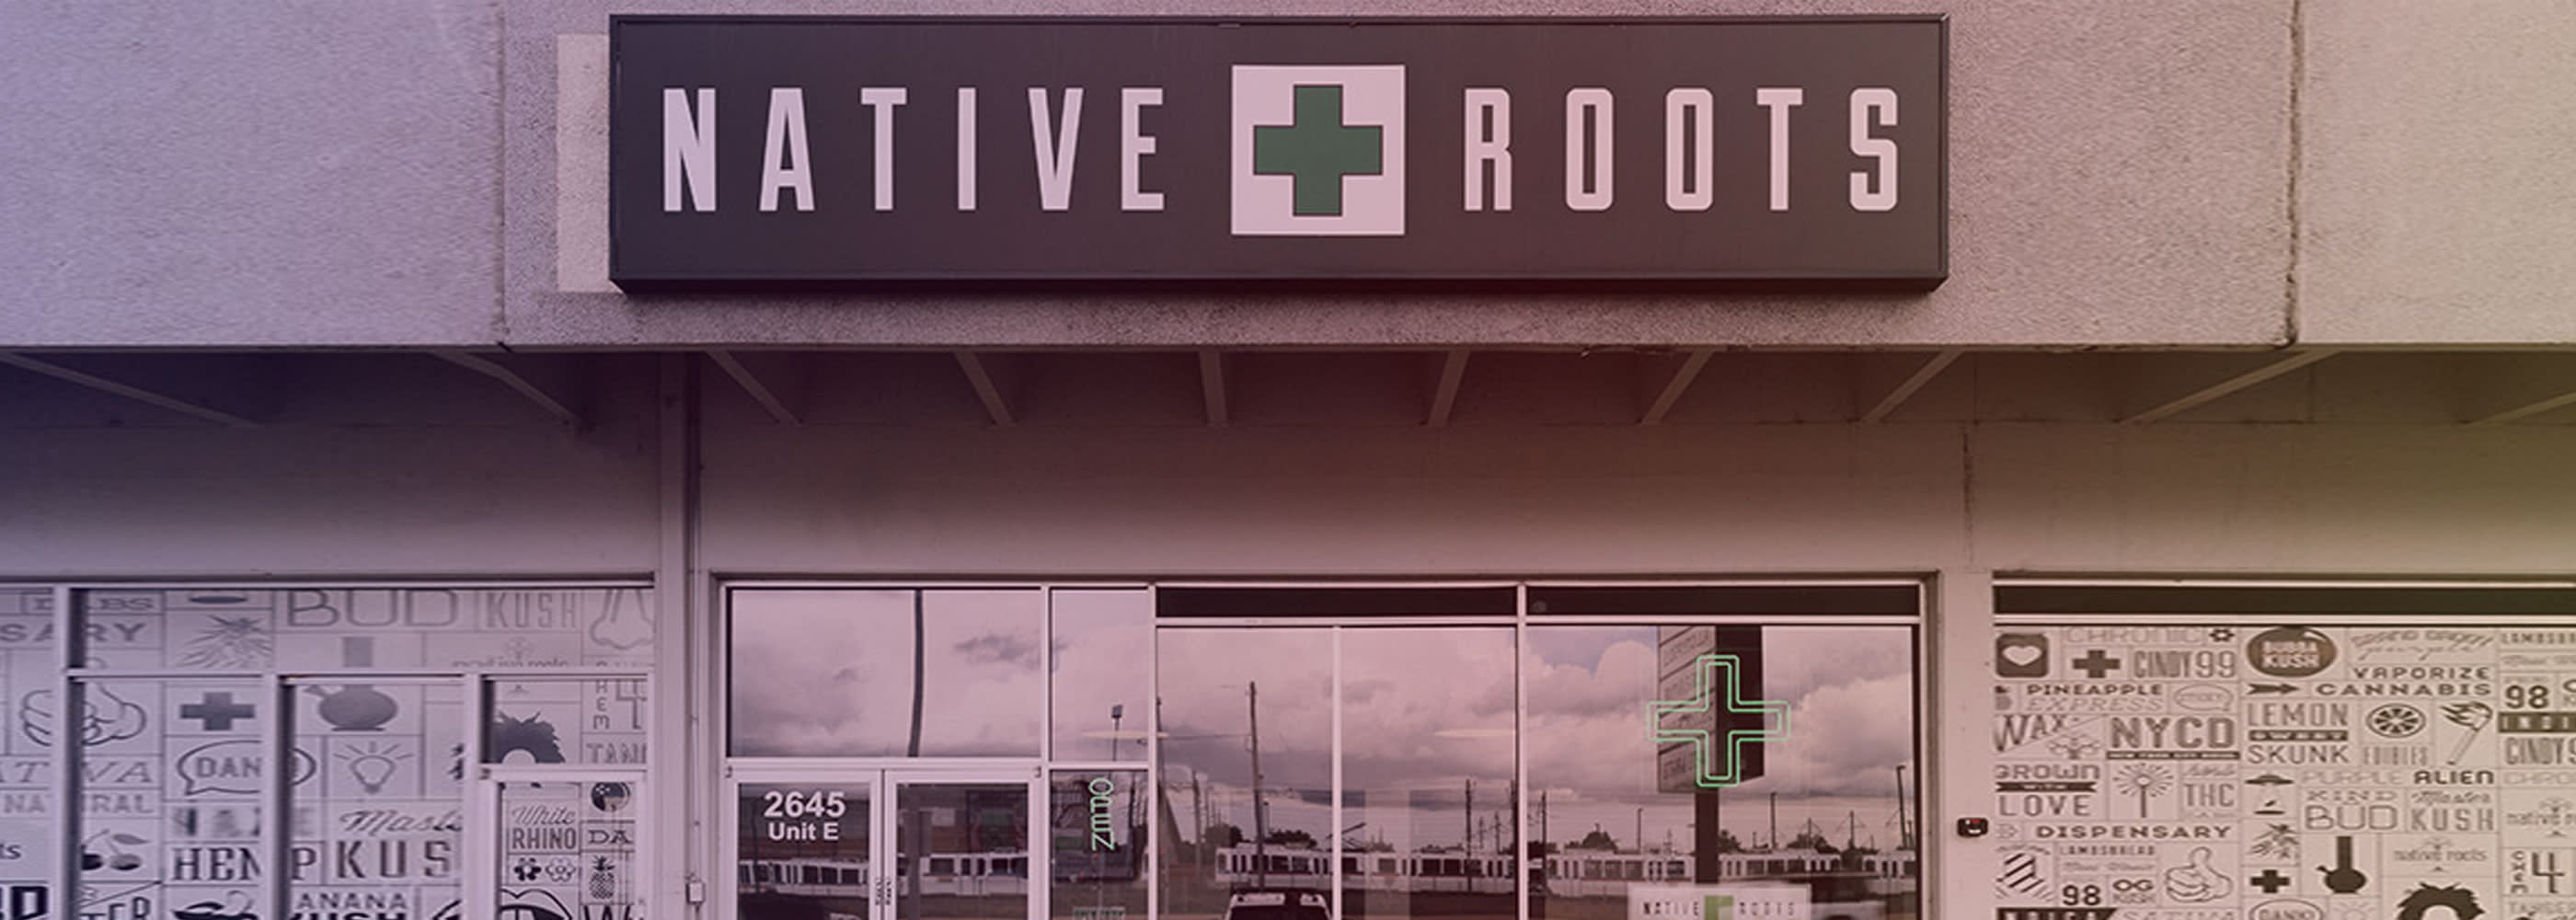 Native Roots Santa fe Marijuana Dispensary  location